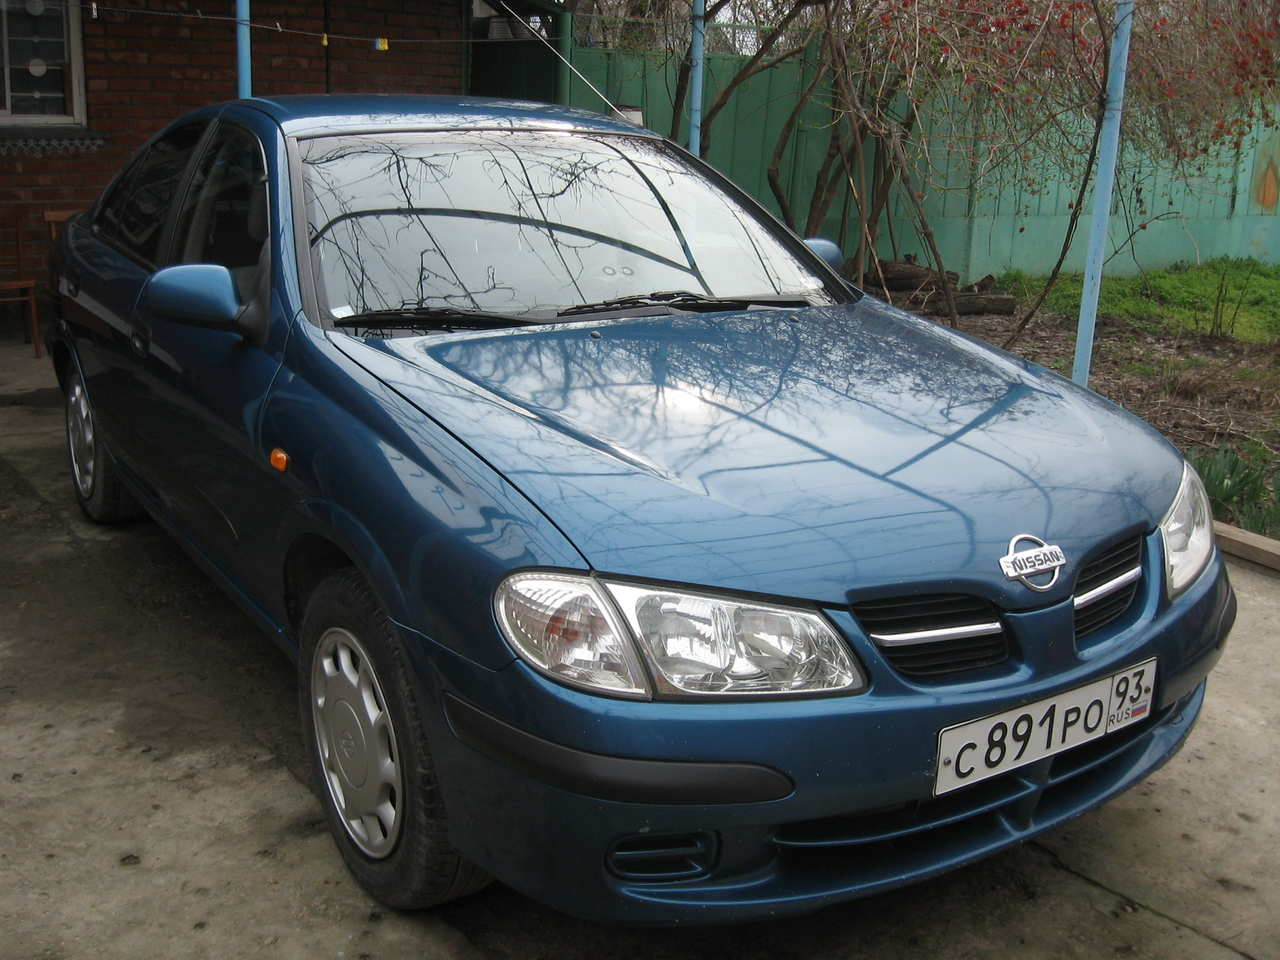 used 2001 nissan almera photos 1500cc ff manual for sale. Black Bedroom Furniture Sets. Home Design Ideas